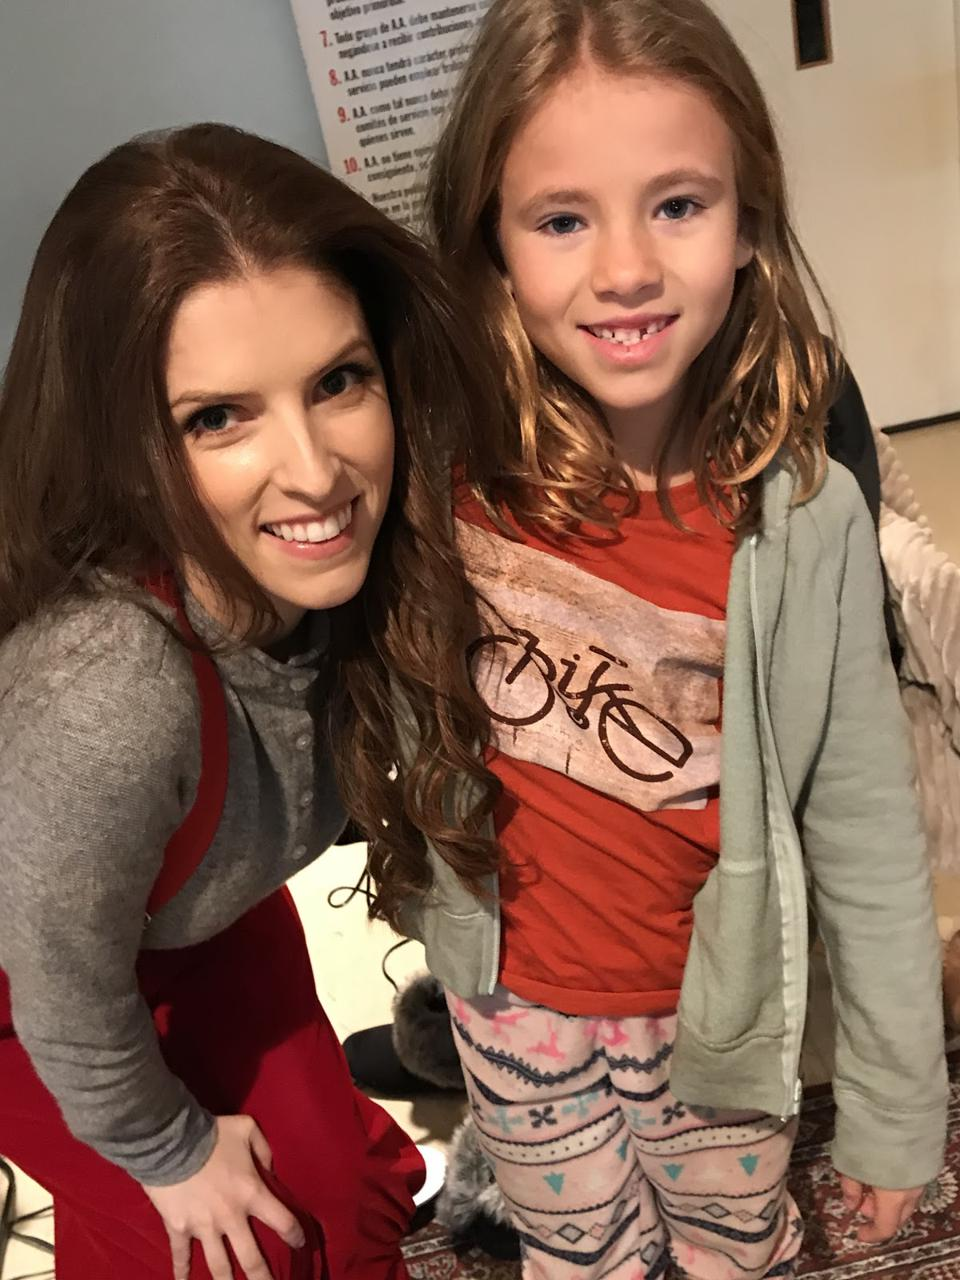 Shaylee Mansfield and actress, Anna Kendrick.